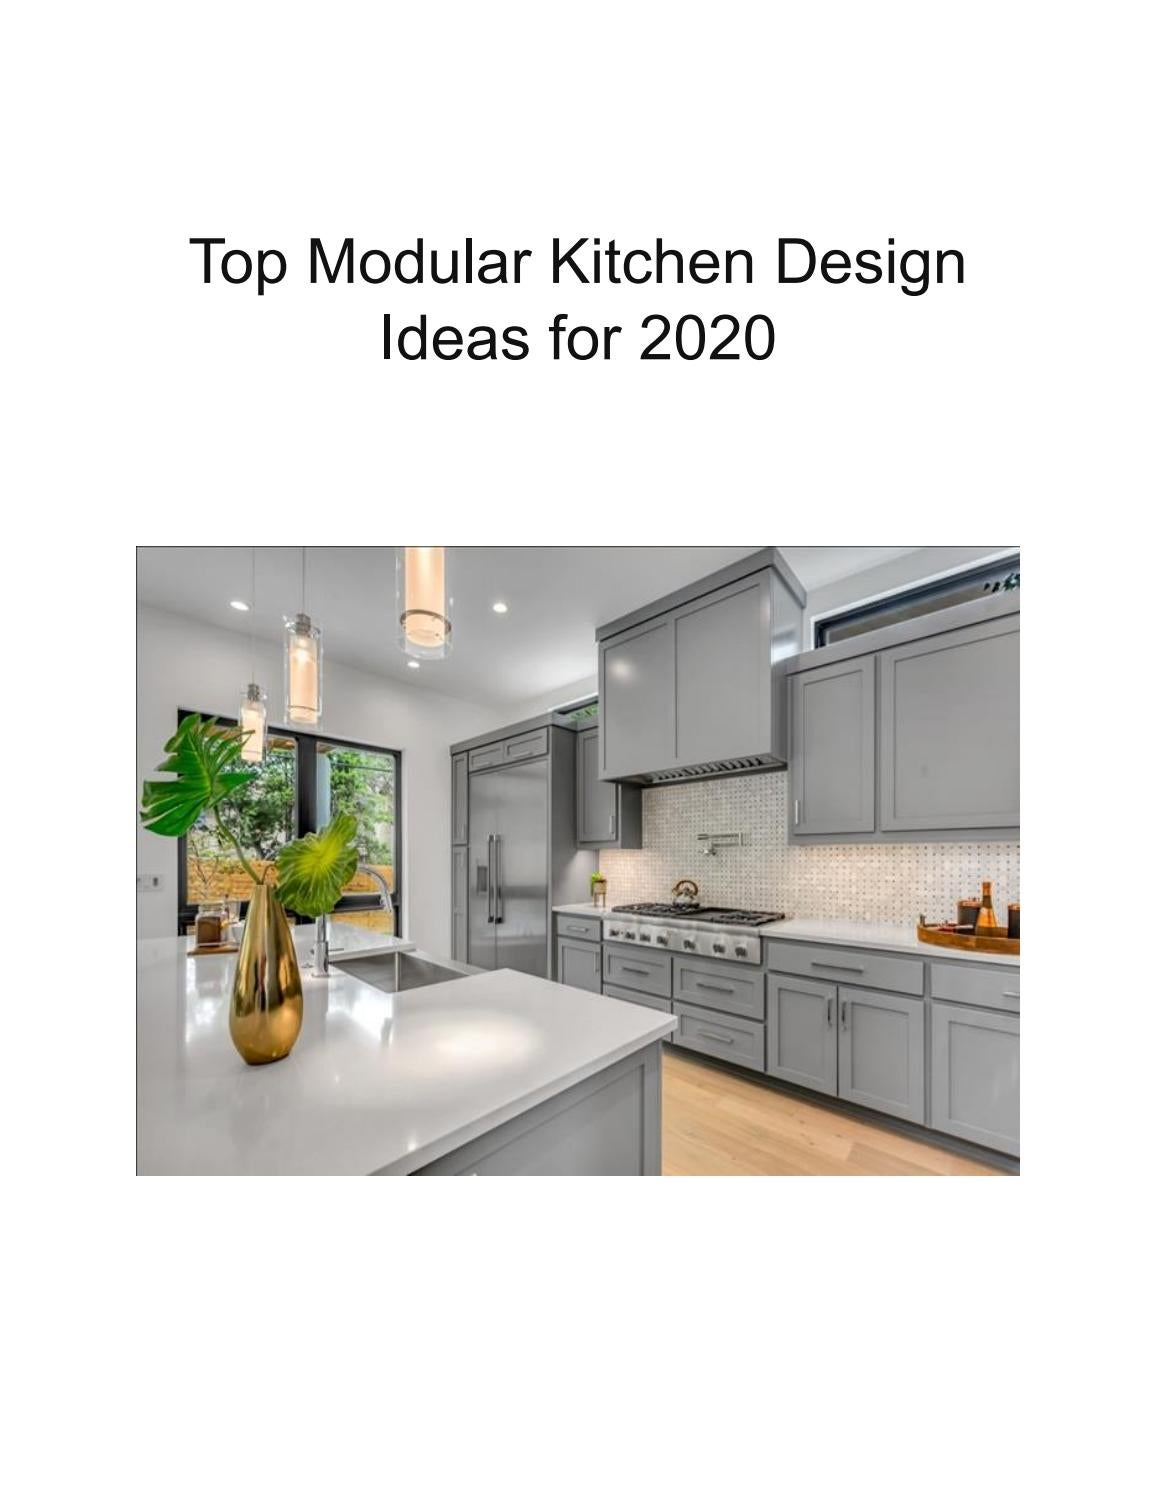 Top Modular Kitchen Design Ideas for 2020 by Build Supply ...